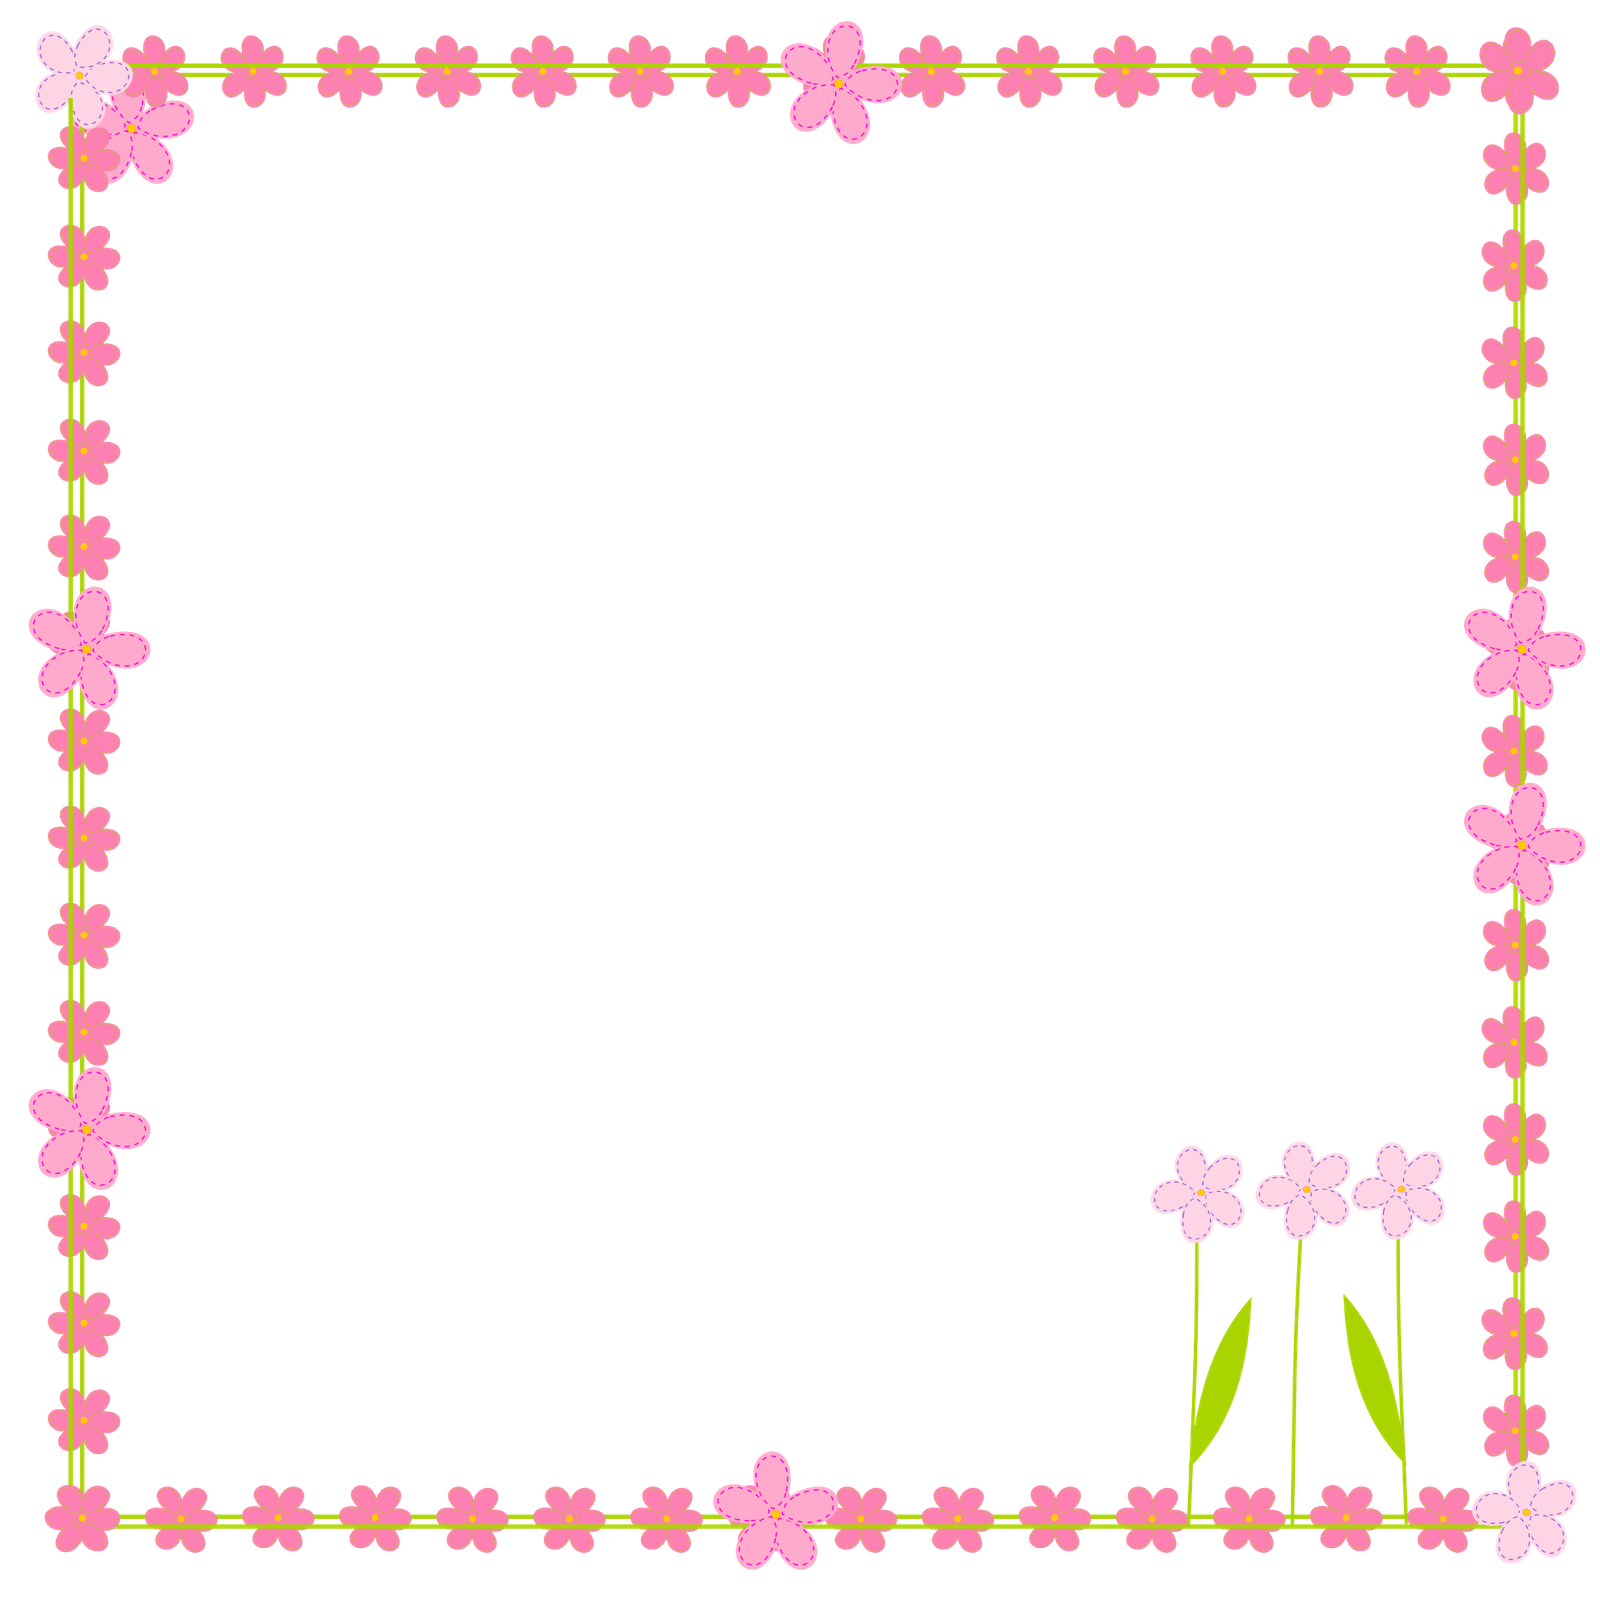 Clip Art Borders And Frames   Clipart Panda   Free Clipart Images